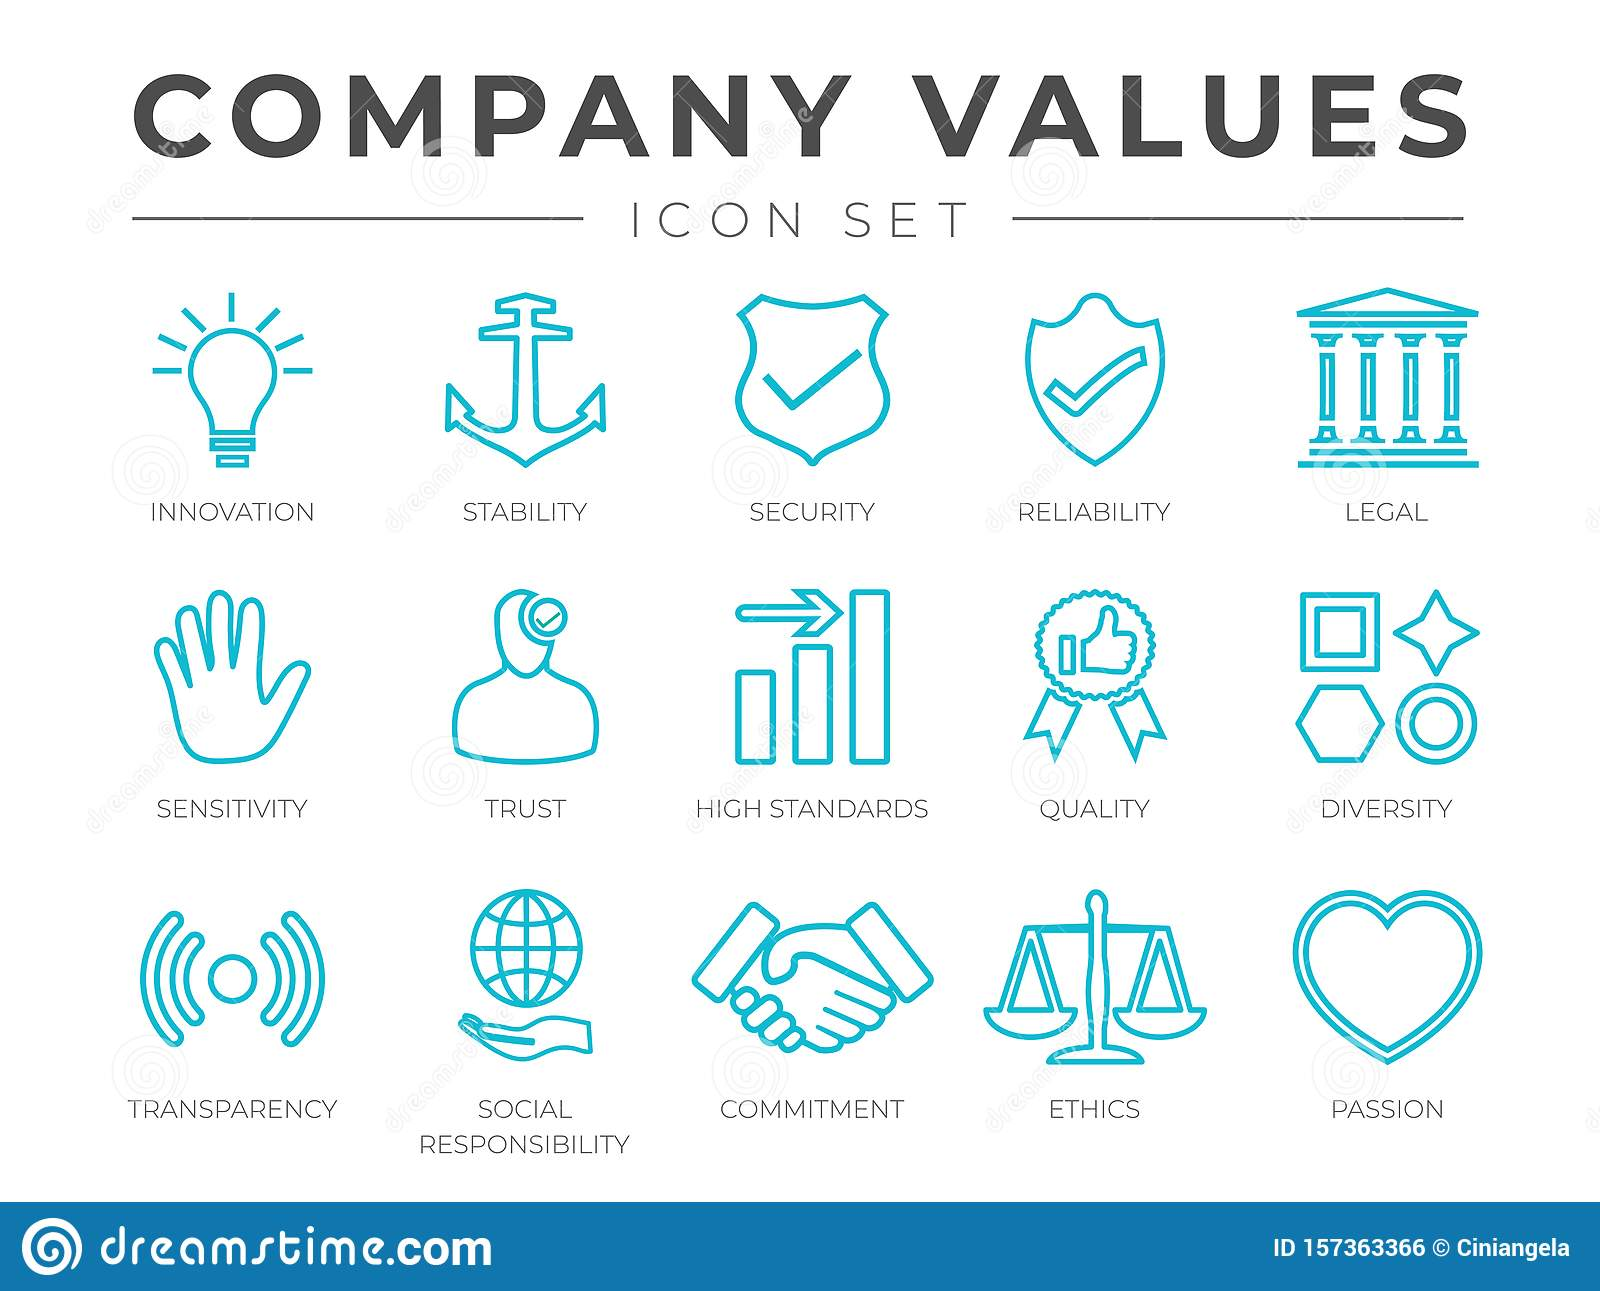 Business Company Core Values Outline Icon Set. Innovation, Stability, Security, Reliability, Legal and Sensitivity, Trust, High